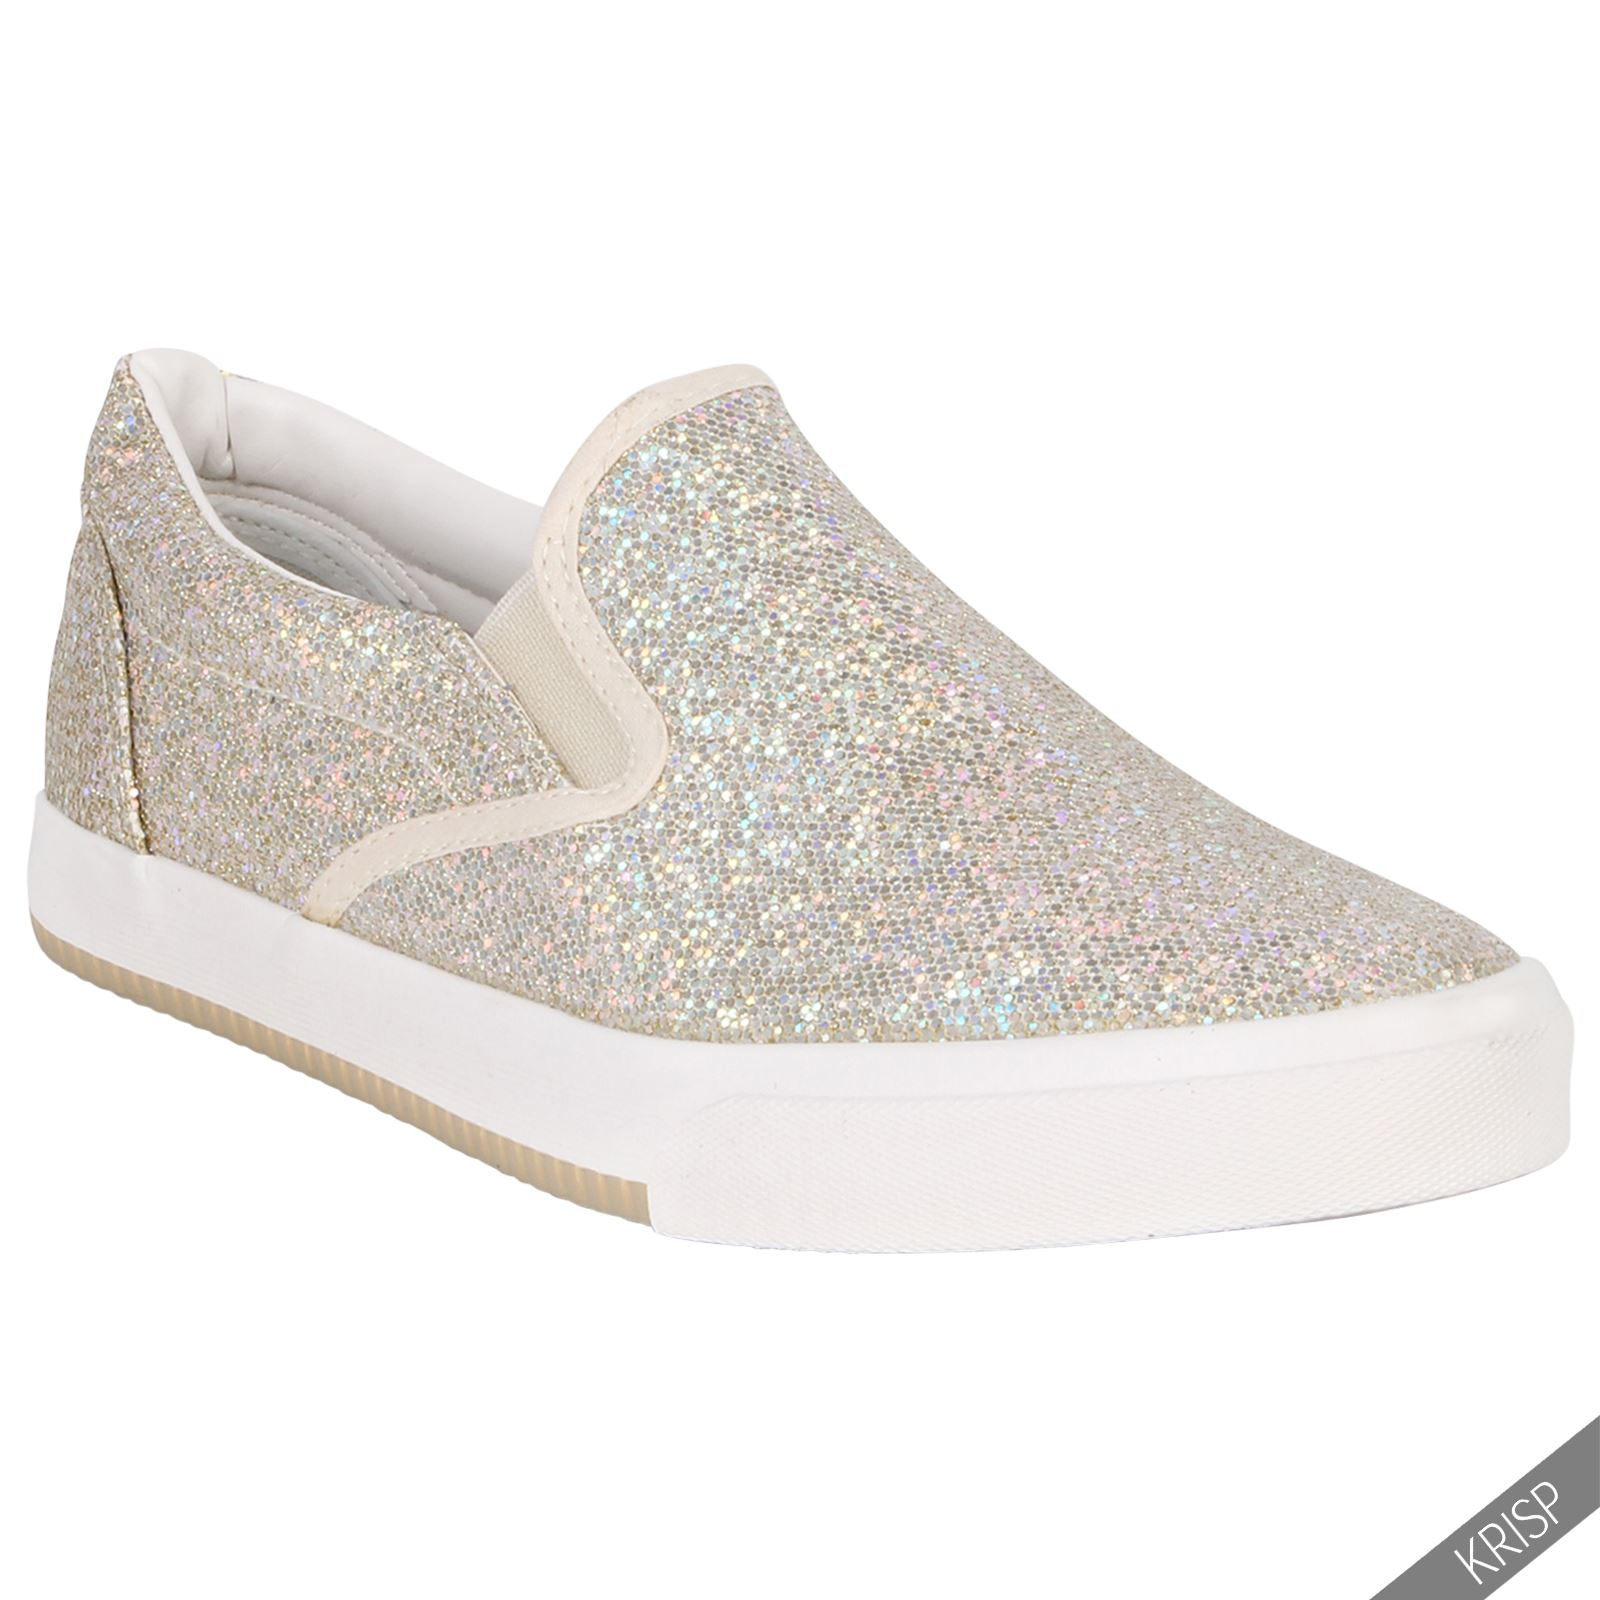 62f9059a244e Women Ladies Floral Glitter Slip On Plimsolls Trainers Sneakers ...